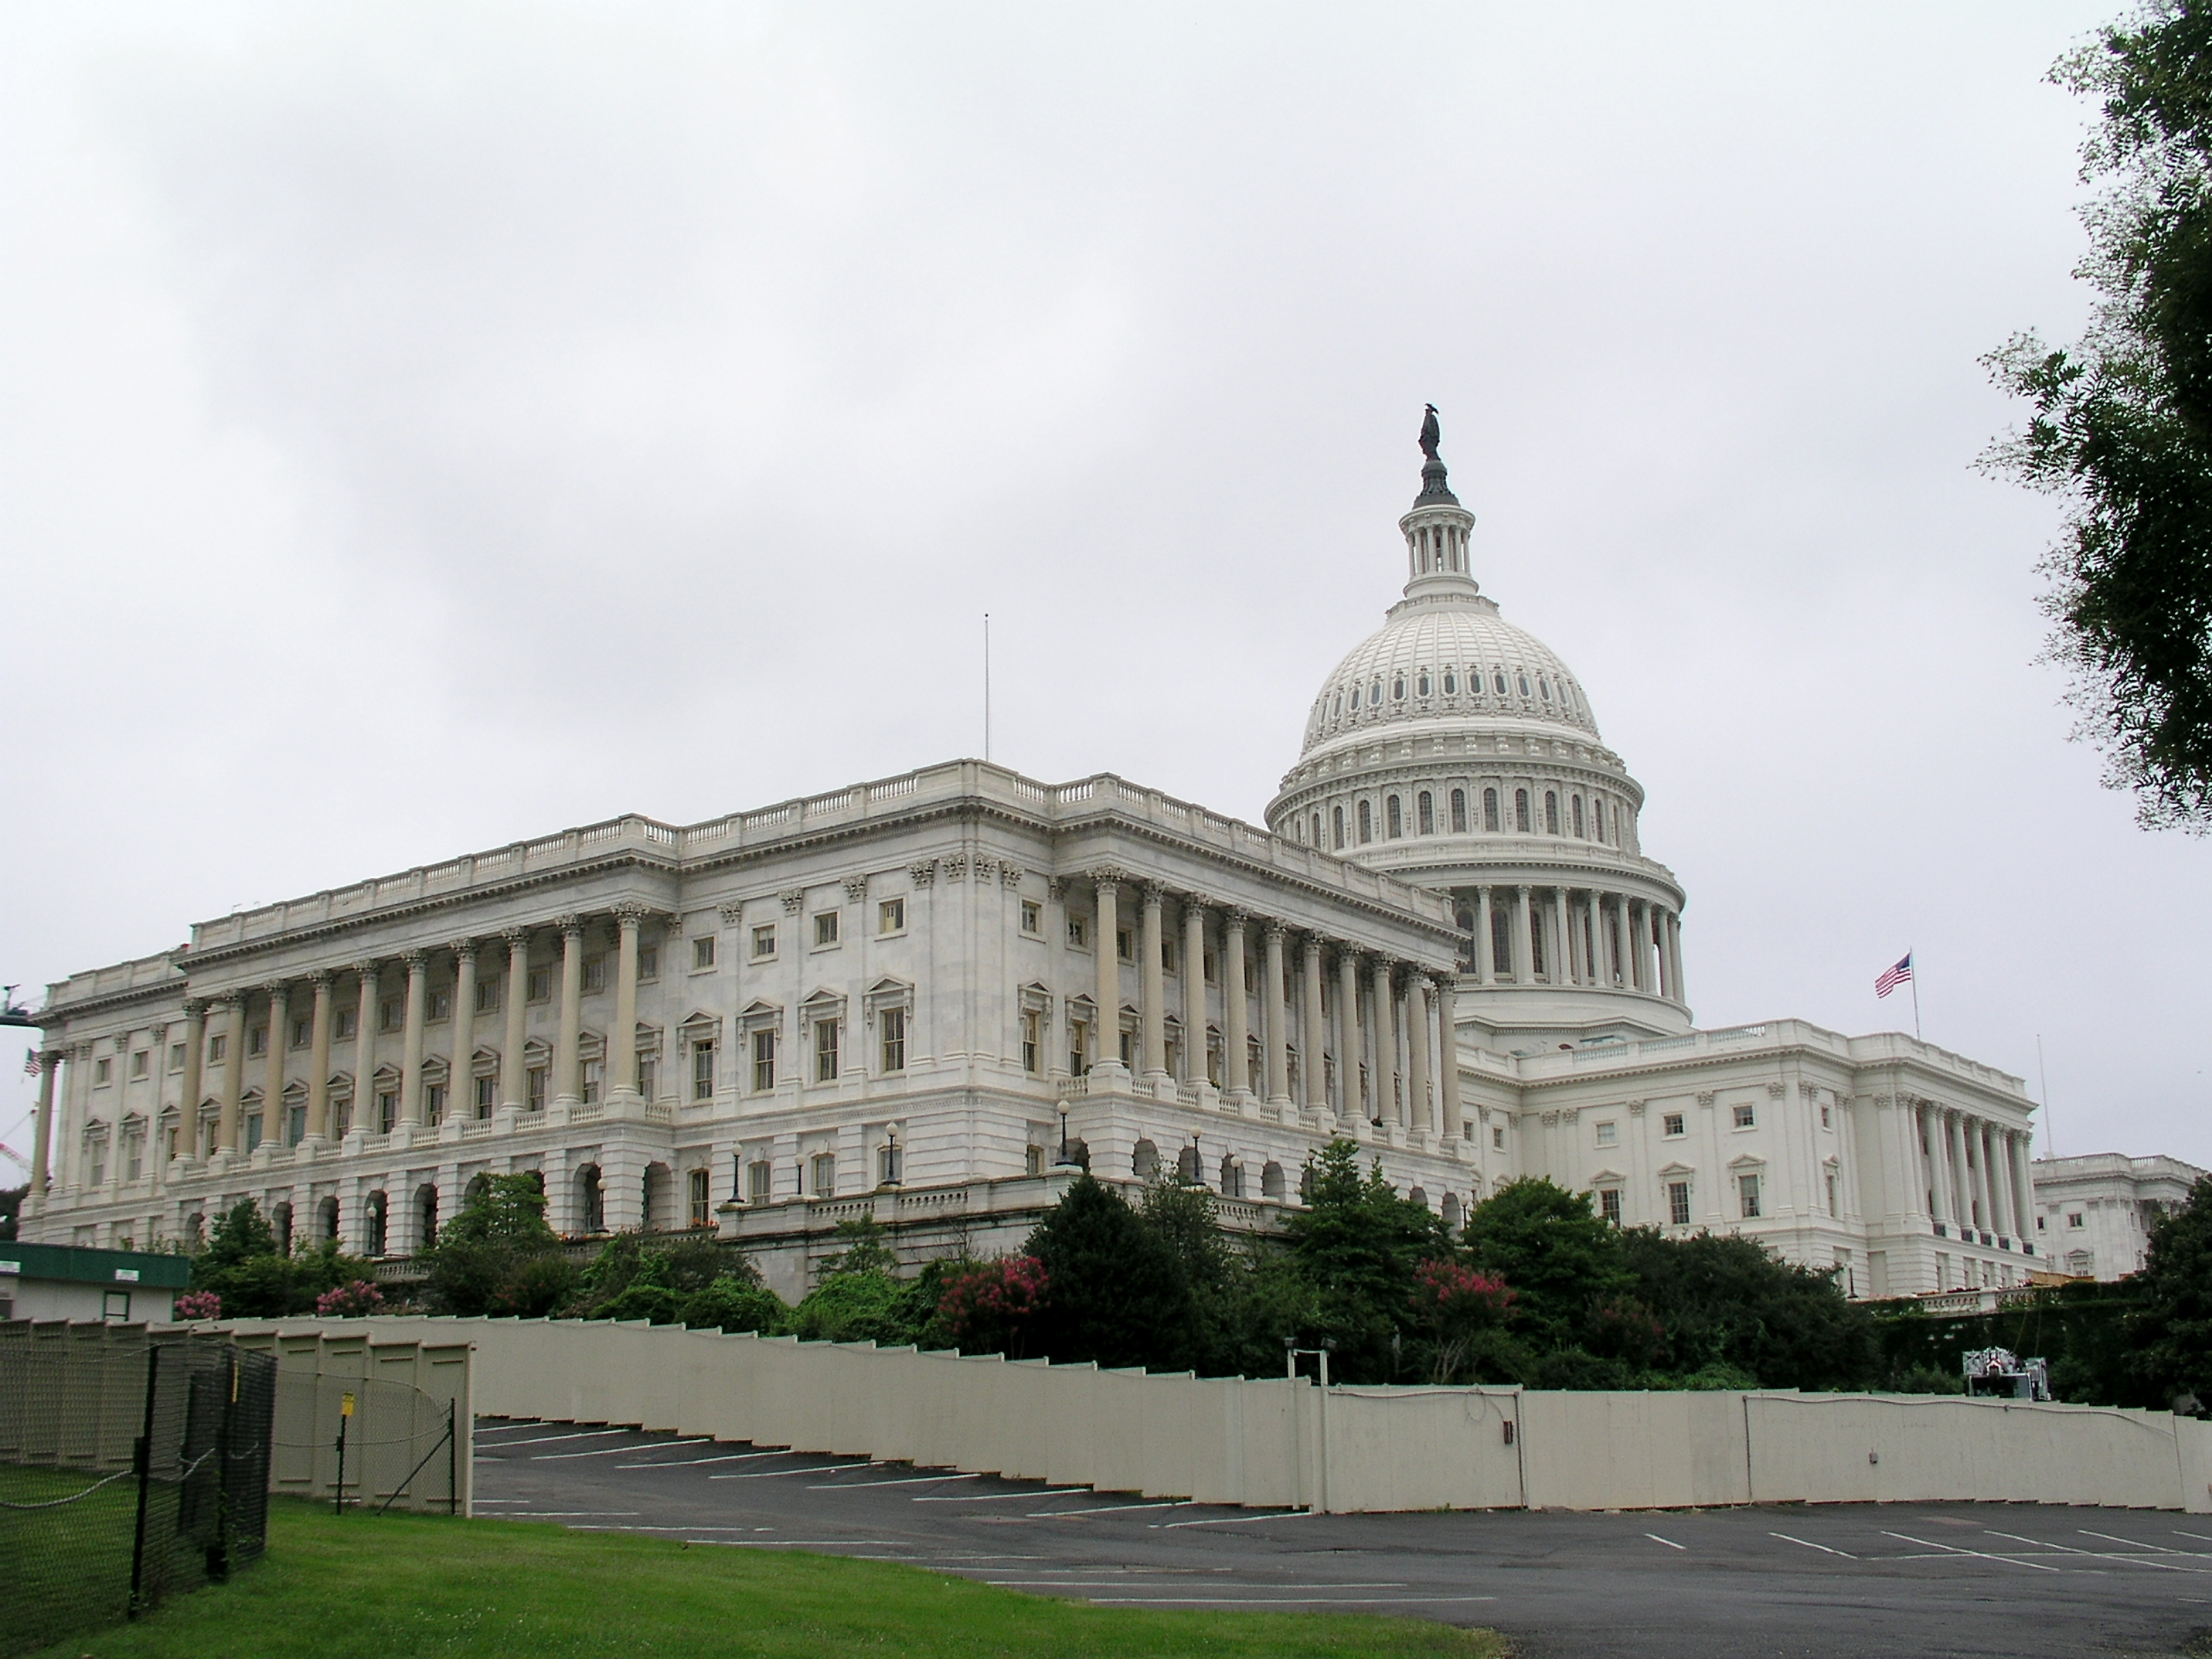 an introduction to the legislative proposals A proposal is an essential marketing document that helps cultivate an initial professional relationship between an organization and a donor over a project to be implemented.